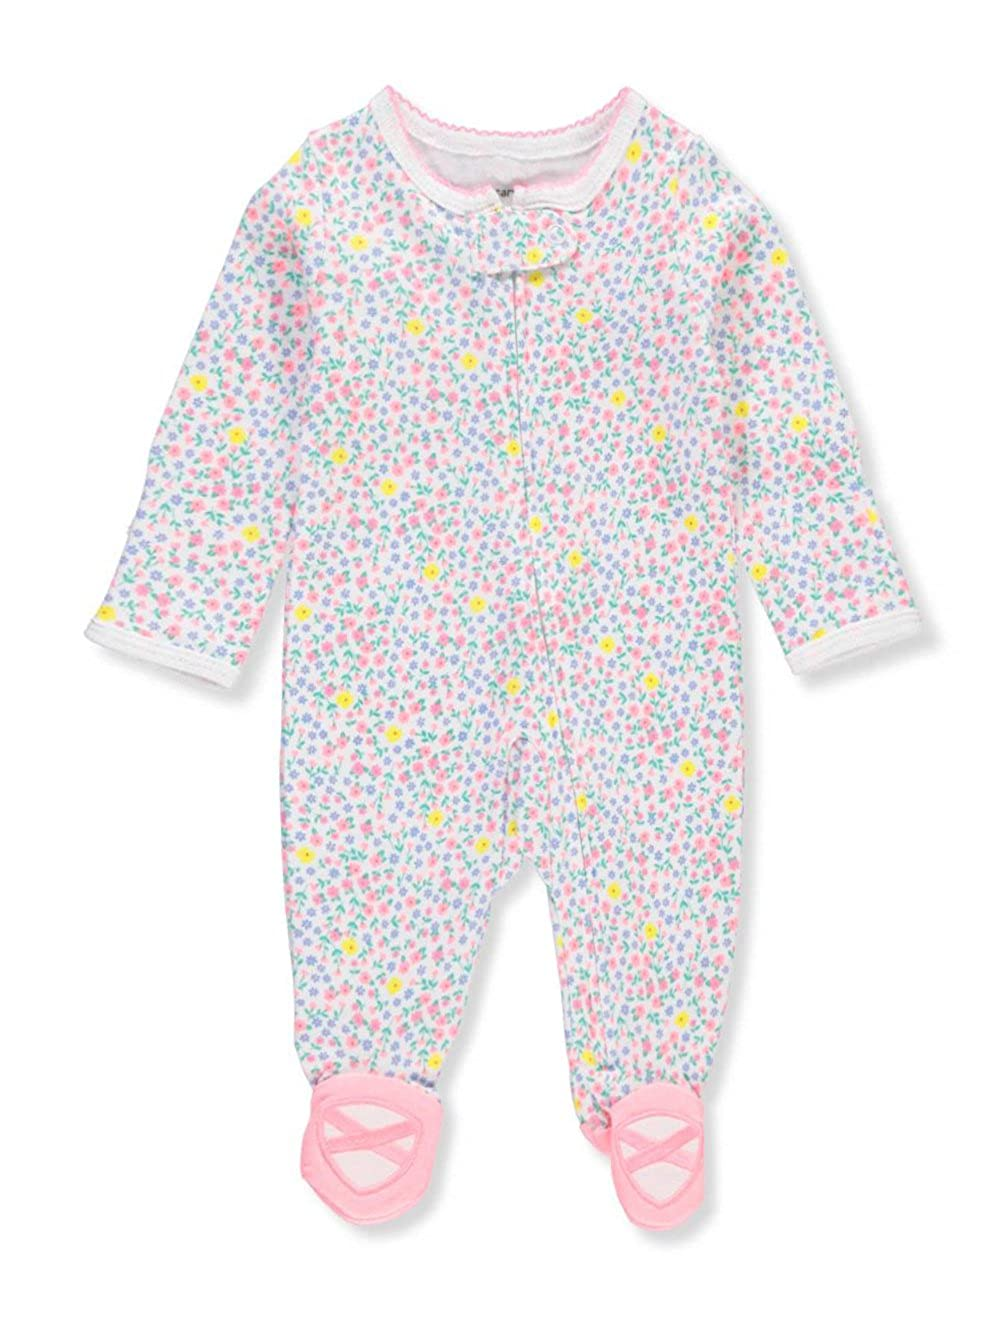 6dd6ff8399e6 Amazon.com  Carter s Baby Girls  Zip up Floral Cotton Sleep and Play ...